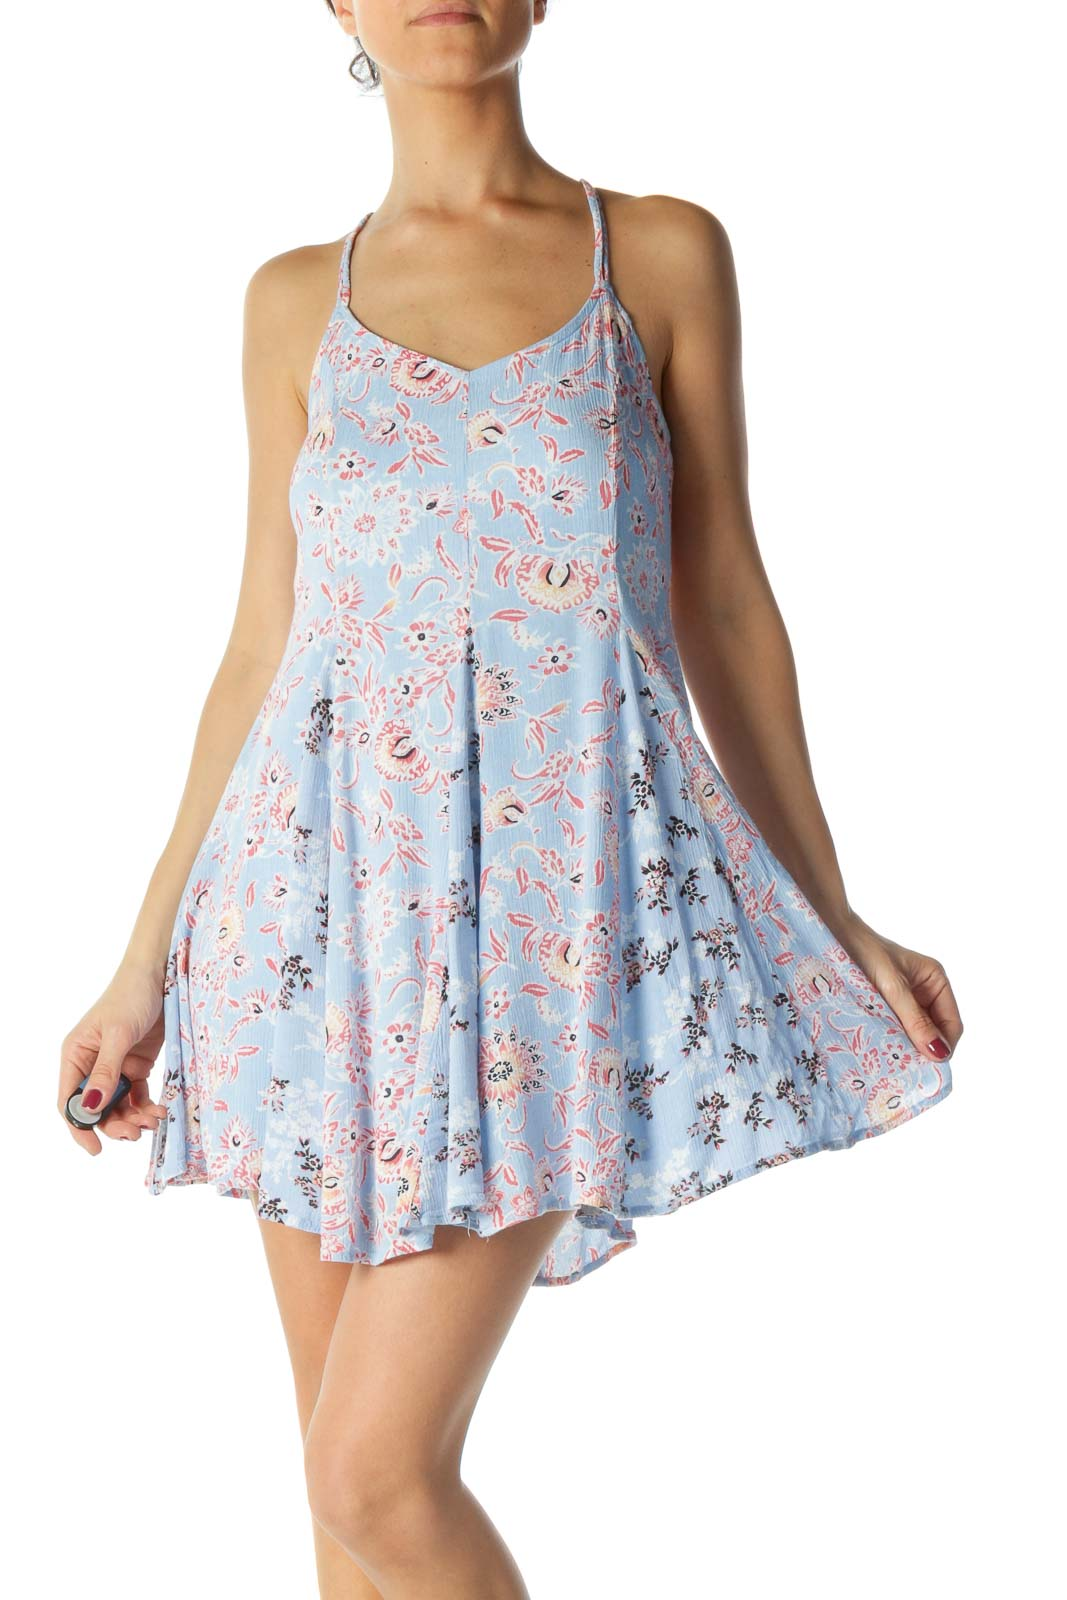 Blue and Pink Floral Print Dress